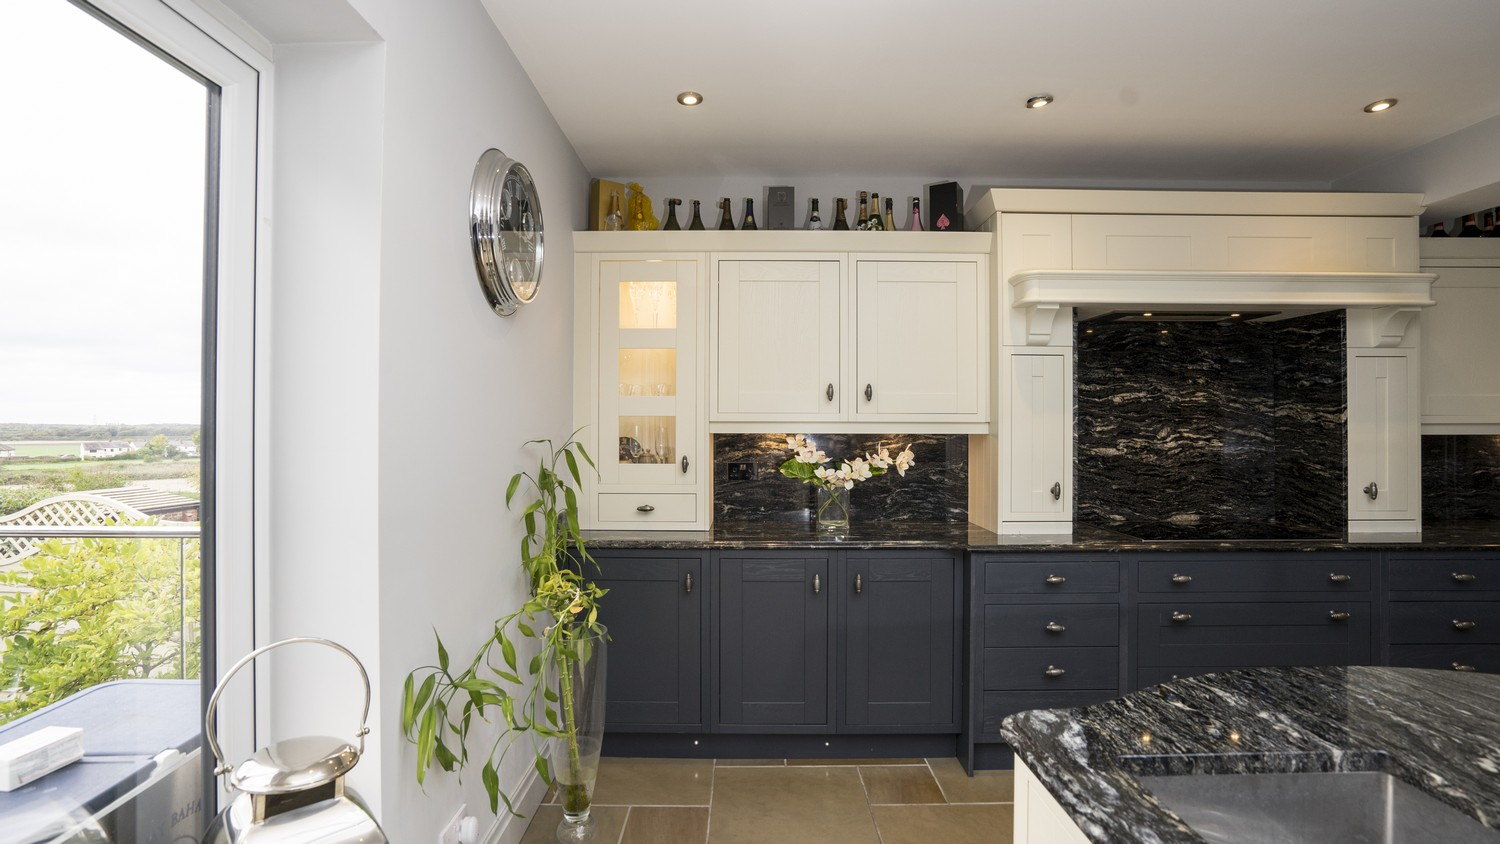 Alternative shot highlighting the cupboard lighting detail and view through the bifolding door to the garden. What a stunning Ormskirk kitchen this is.